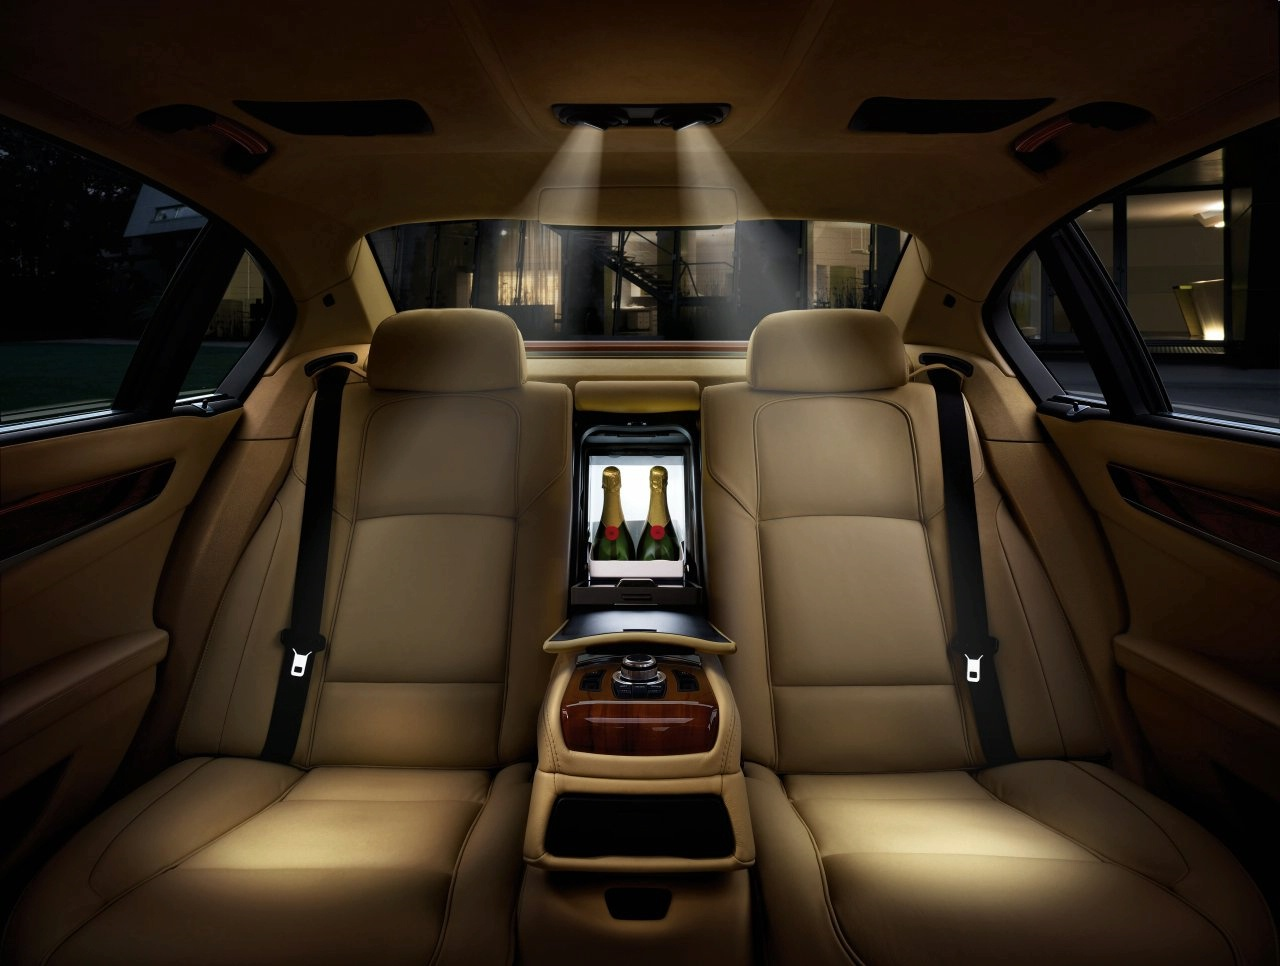 Bmw 7 series sedan car review 2012 and pictures luxury cars never die